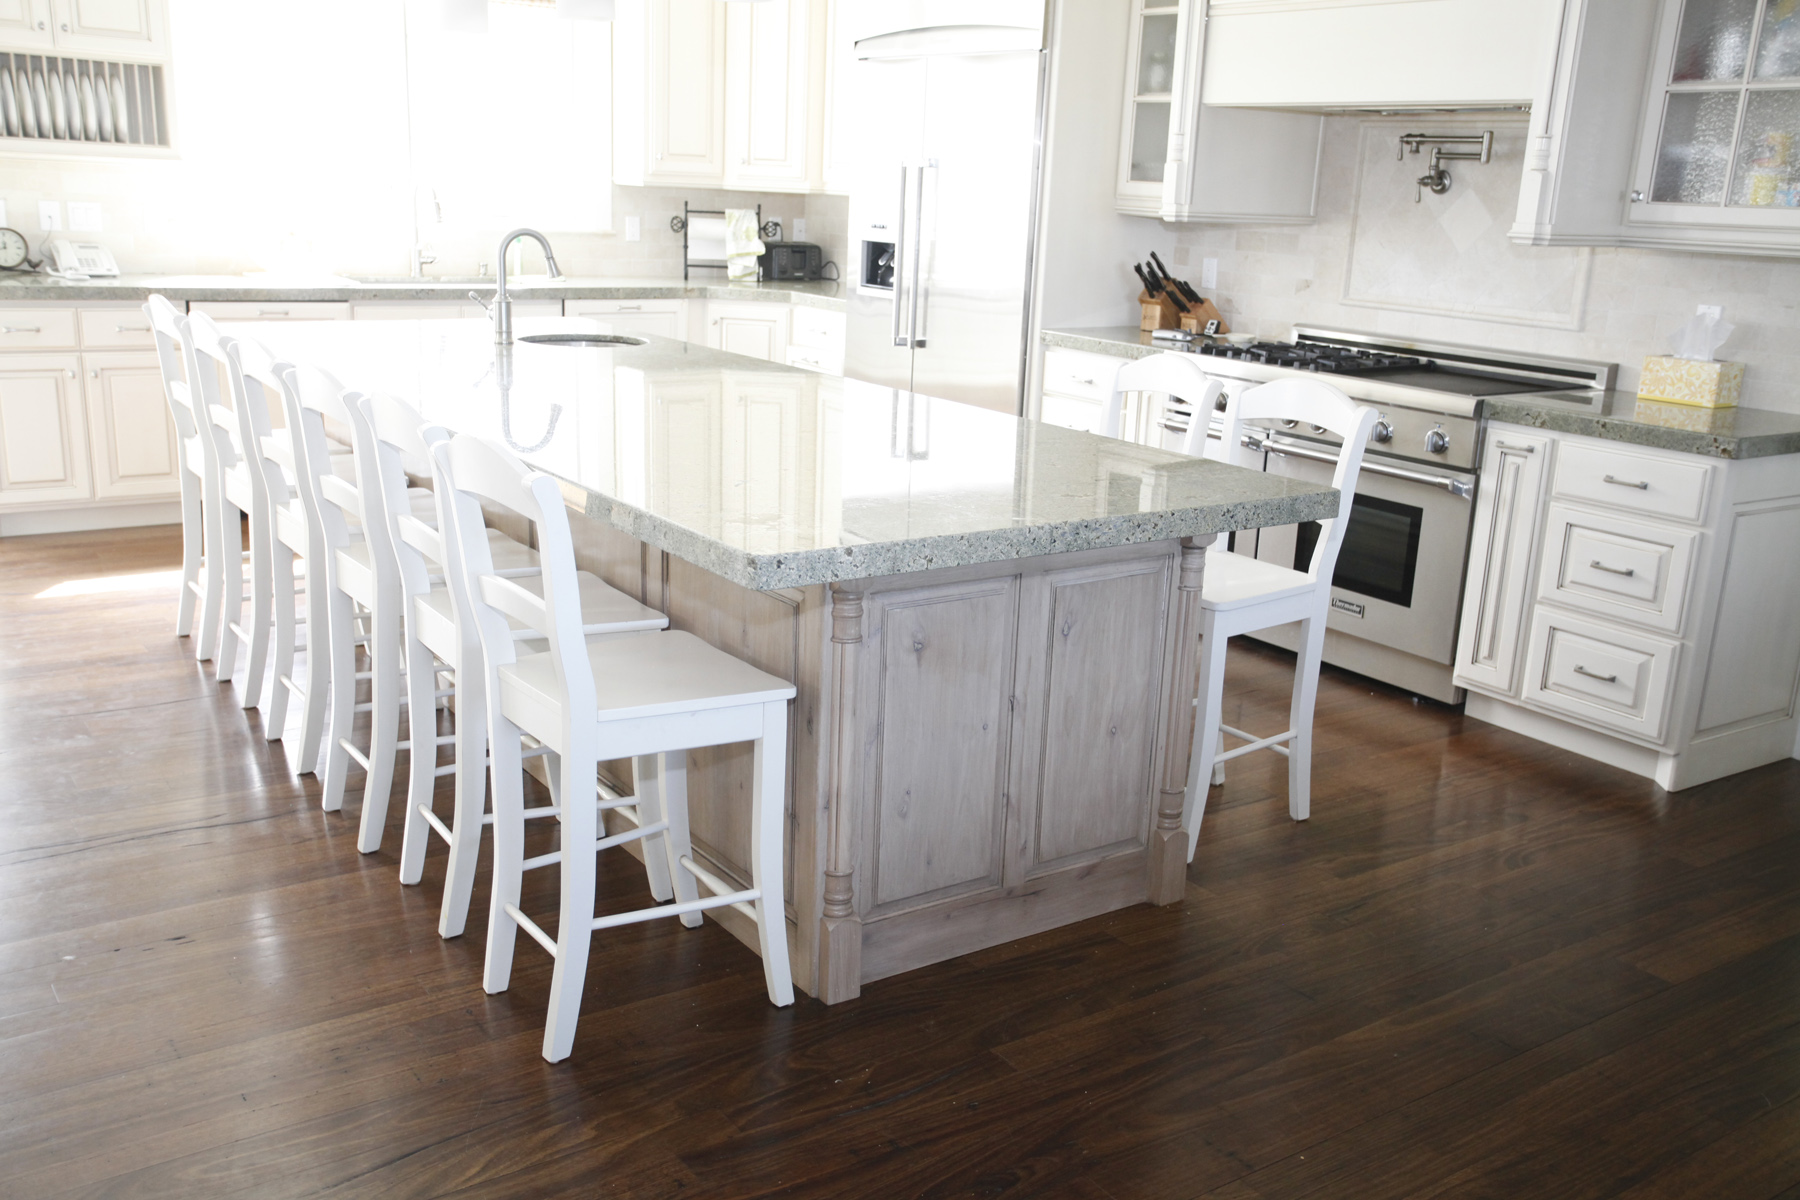 hardwood floor kitchens kitchen wood floors Hardwood floor kitchen